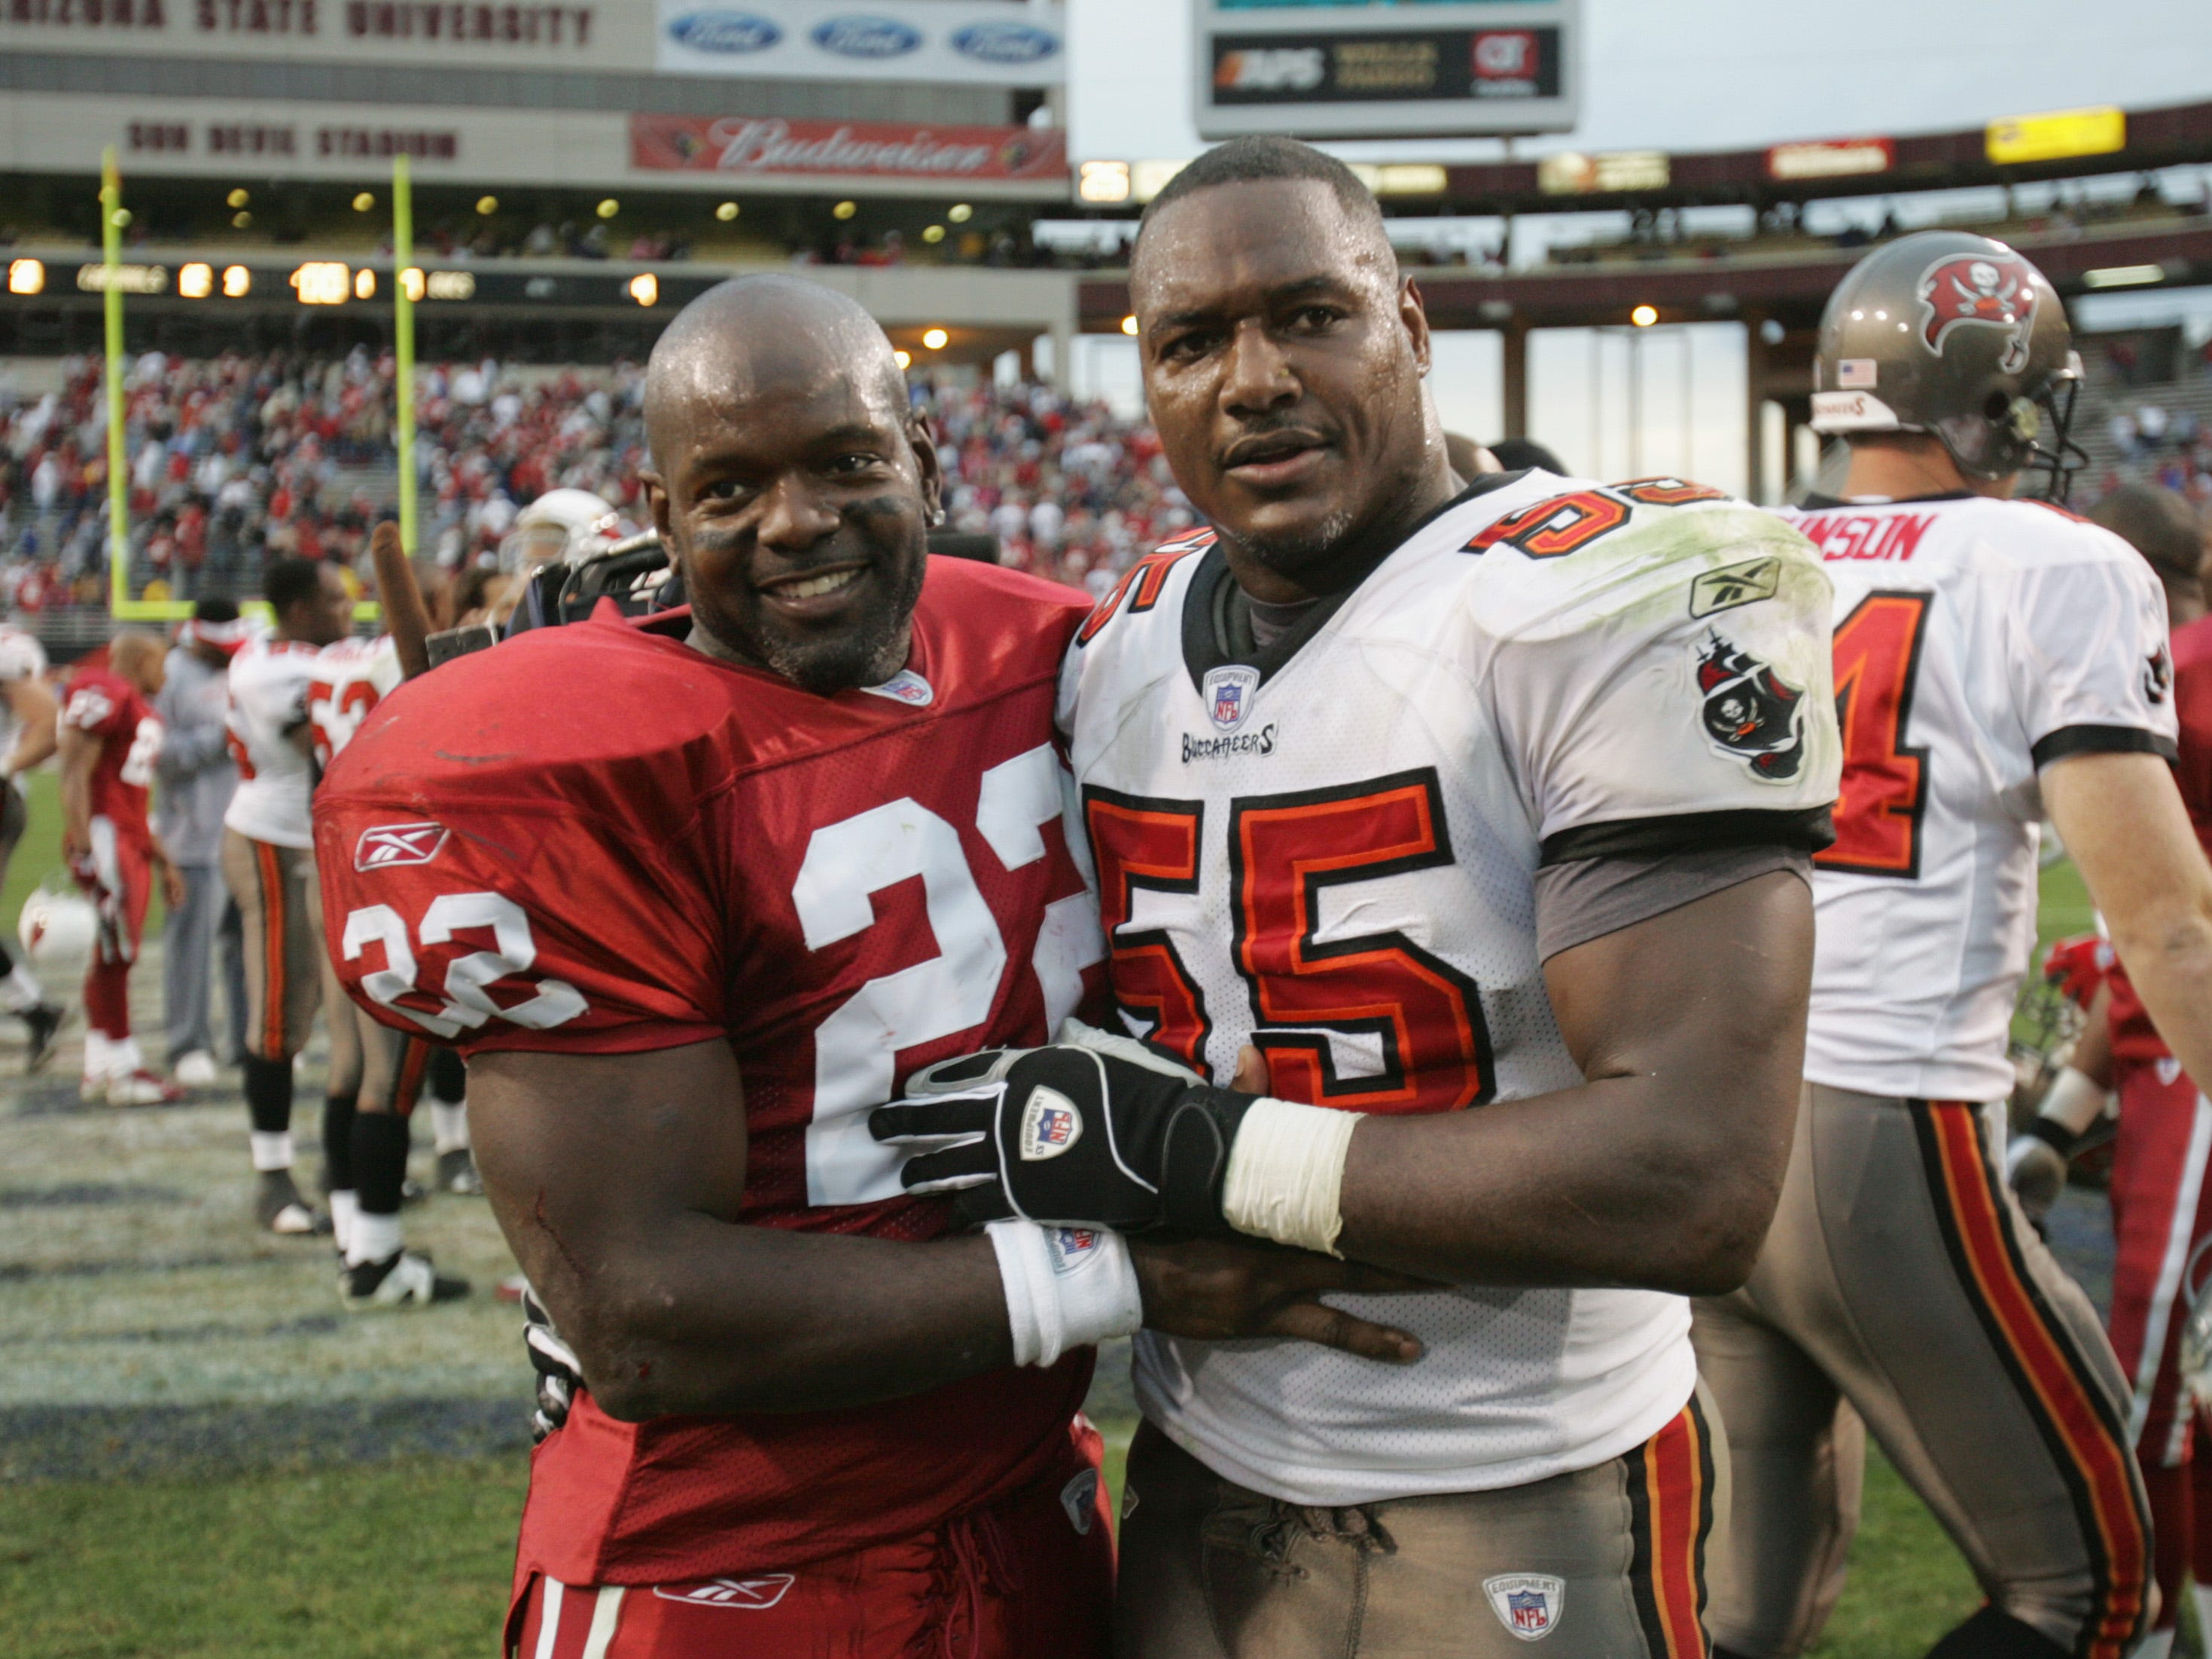 Running back Emmitt Smith #22 of the Arizona Cardinals poses for a picture with linebacker Derrick Brooks #55 of the Tampa Bay Buccaneers during the game at Sun Devil Stadium on January 2, 2005 in Tempe, Arizona. Both are Pensacola natives. The Cardinals defeated the Buccaneers 12-7.